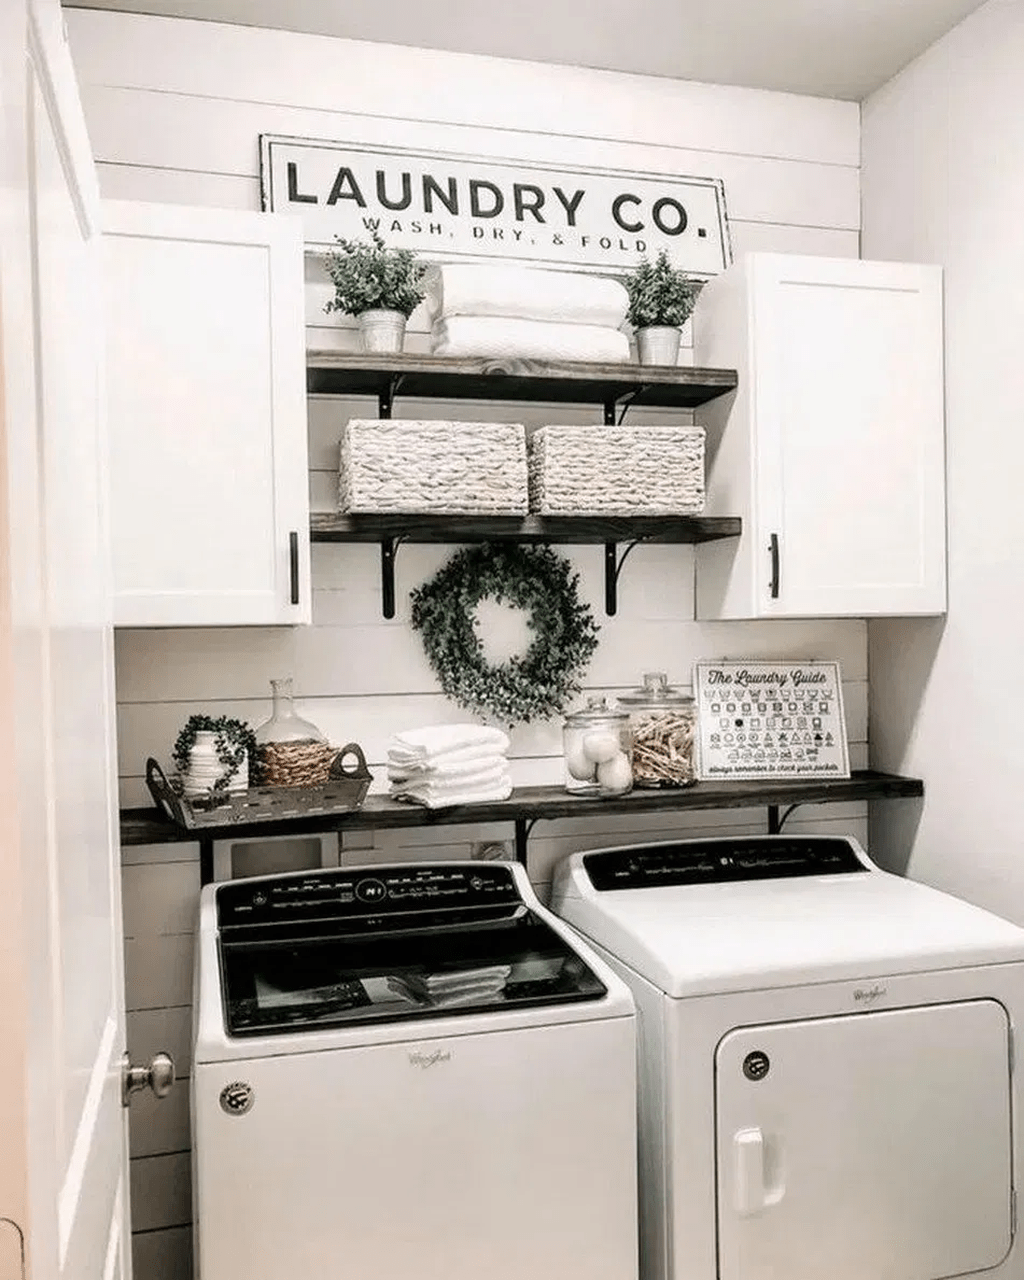 35 Fascinating Rustic Laundry Room Decor Ideas Laundry Room Decorating Is Often Put Off Because Ma In 2020 Diy Laundry Room Signs Laundry Room Signs Laundry Room Diy